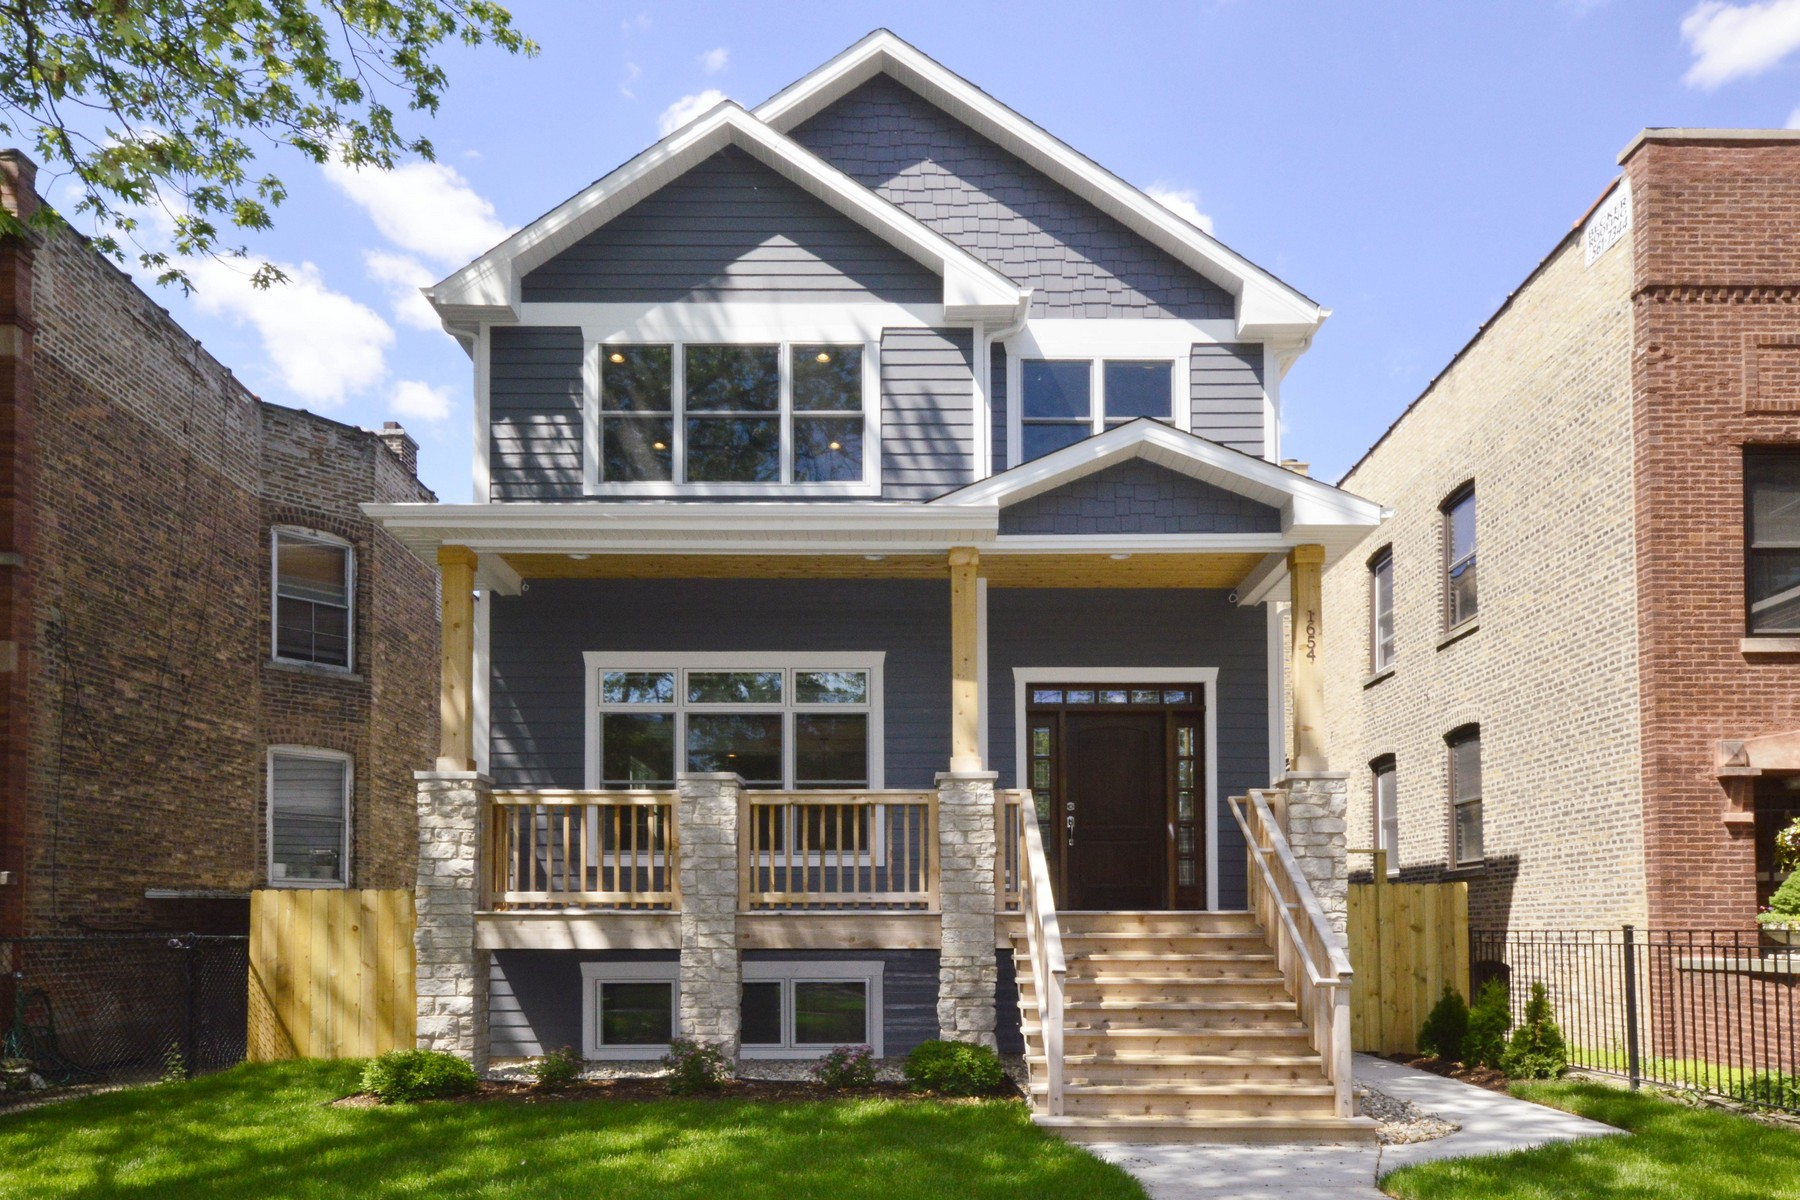 Single Family Home for Sale at Timeless and Beautiful Andersonville New Construction 1654 W Carmen Avenue Chicago, Illinois 60640 United States